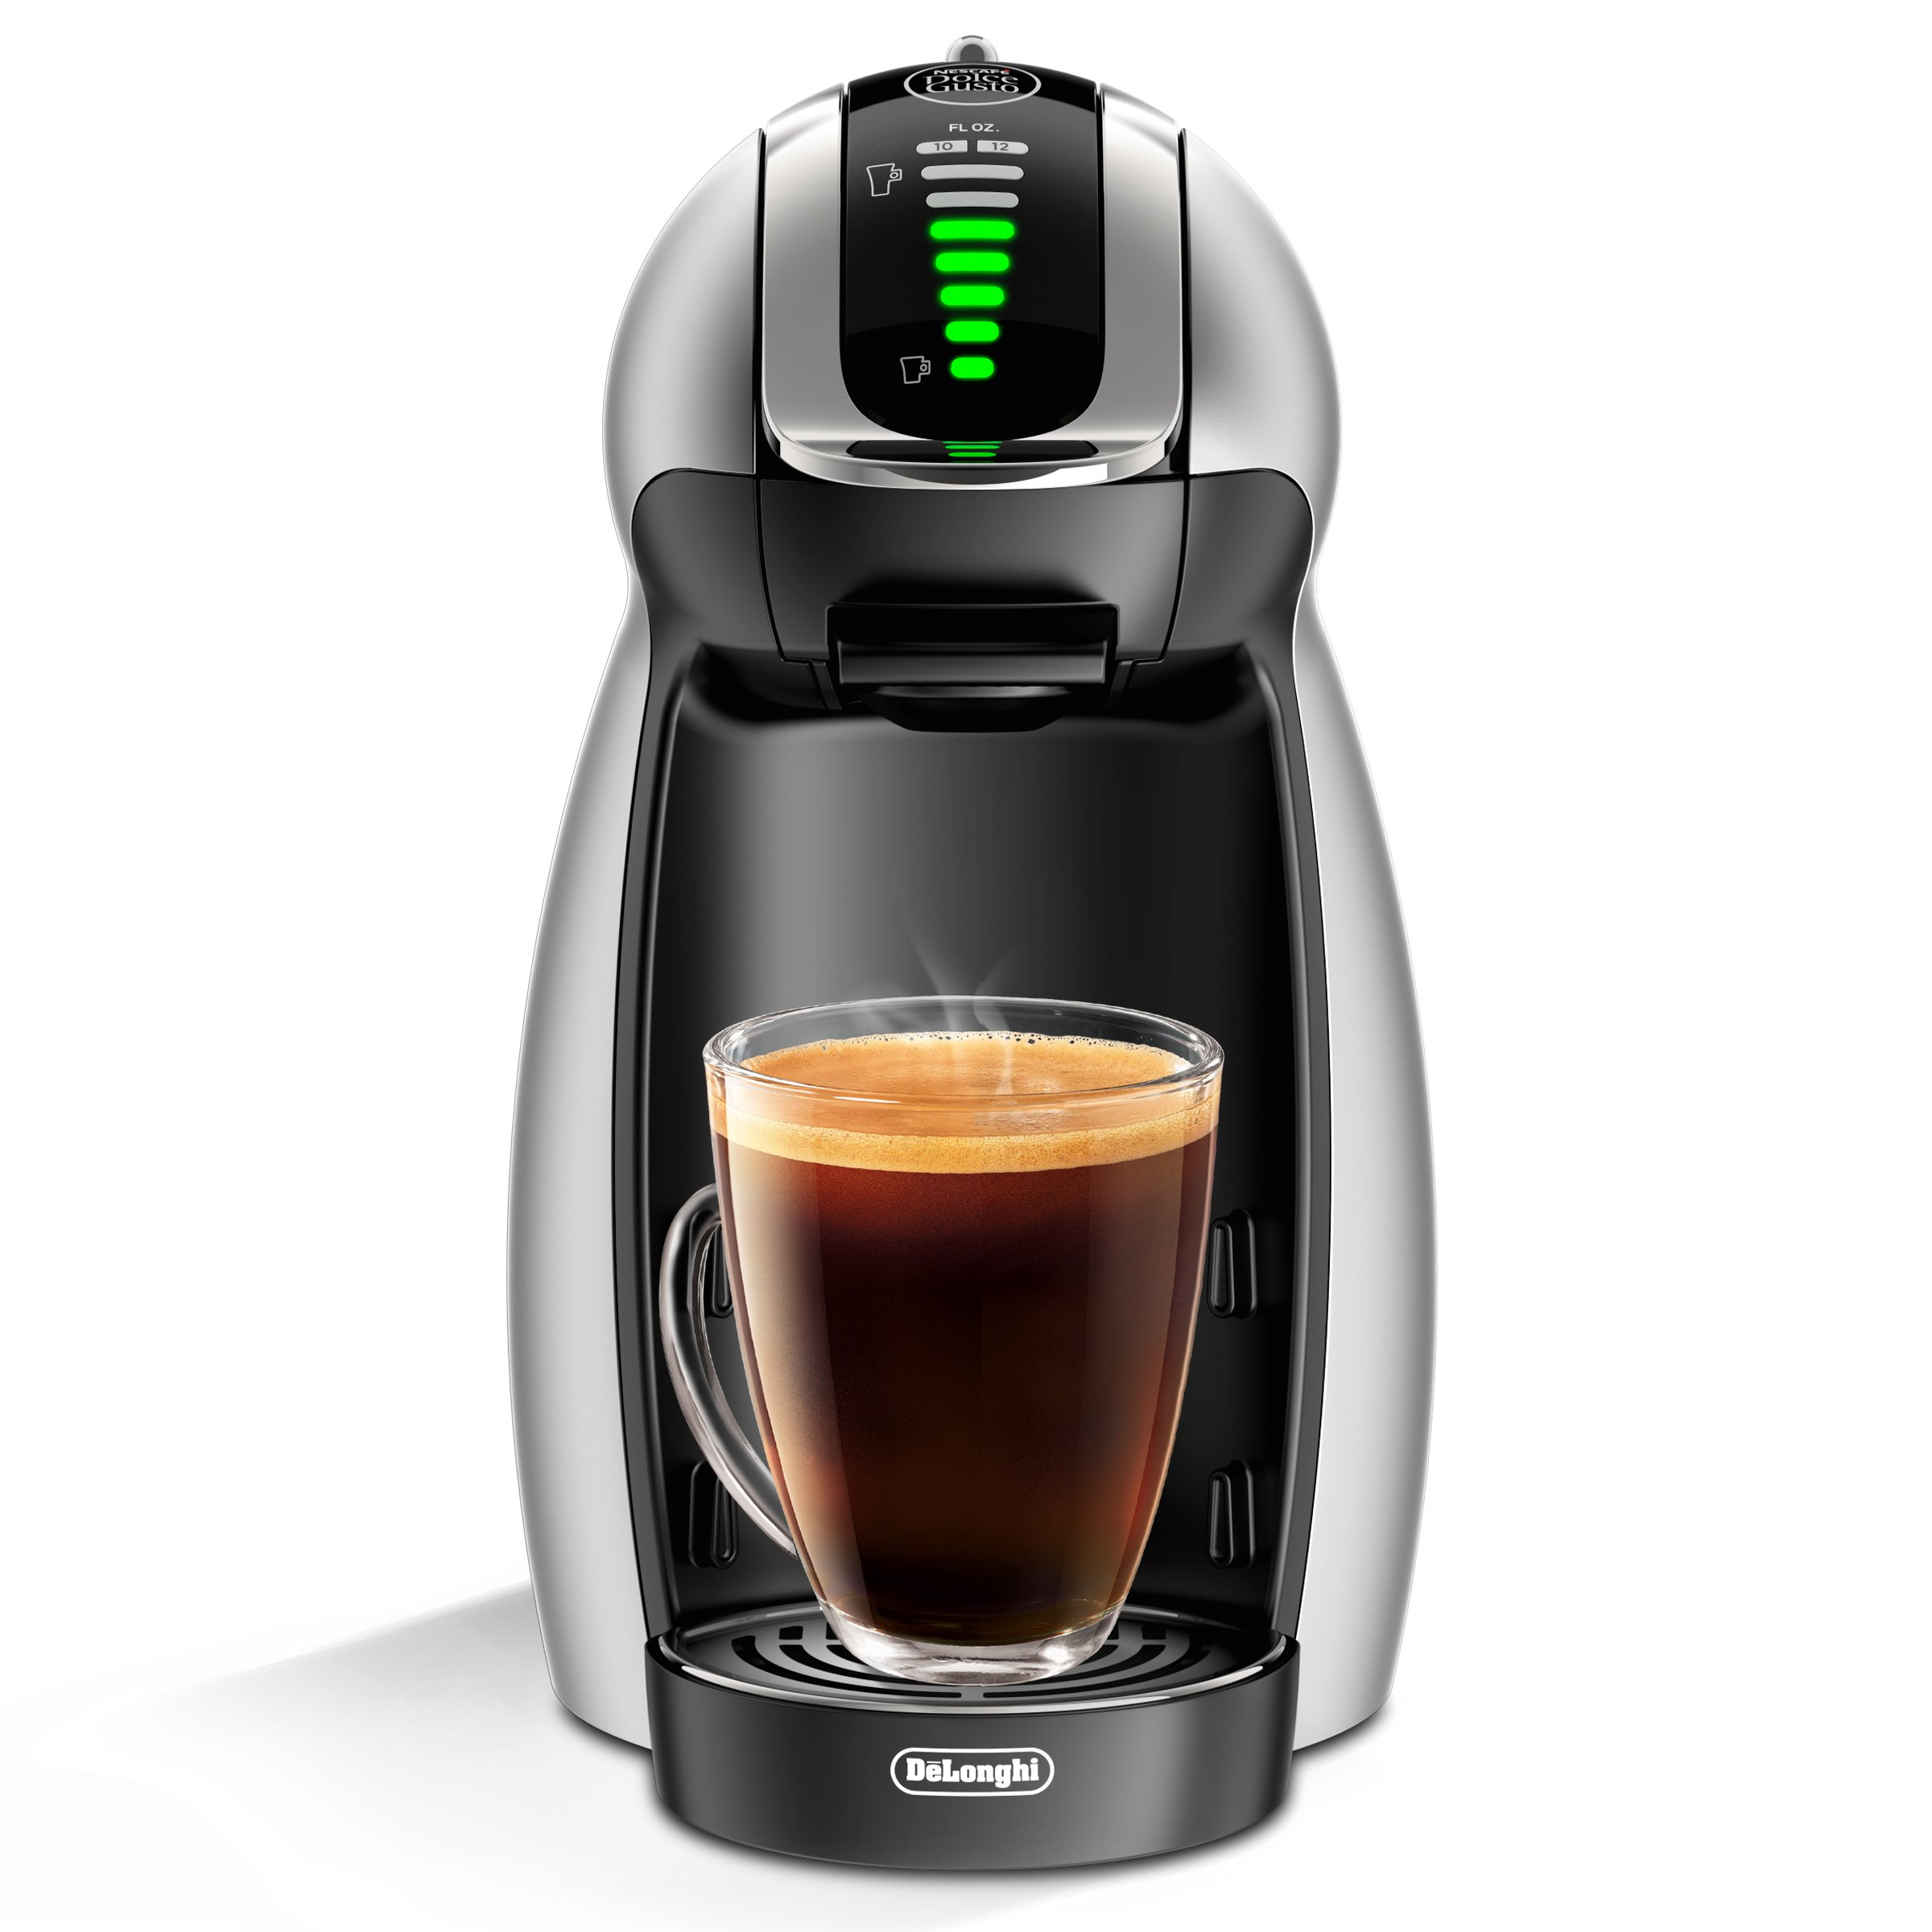 nescafe dolce gusto coffee sampler 30 capsules grocery gourmet food. Black Bedroom Furniture Sets. Home Design Ideas